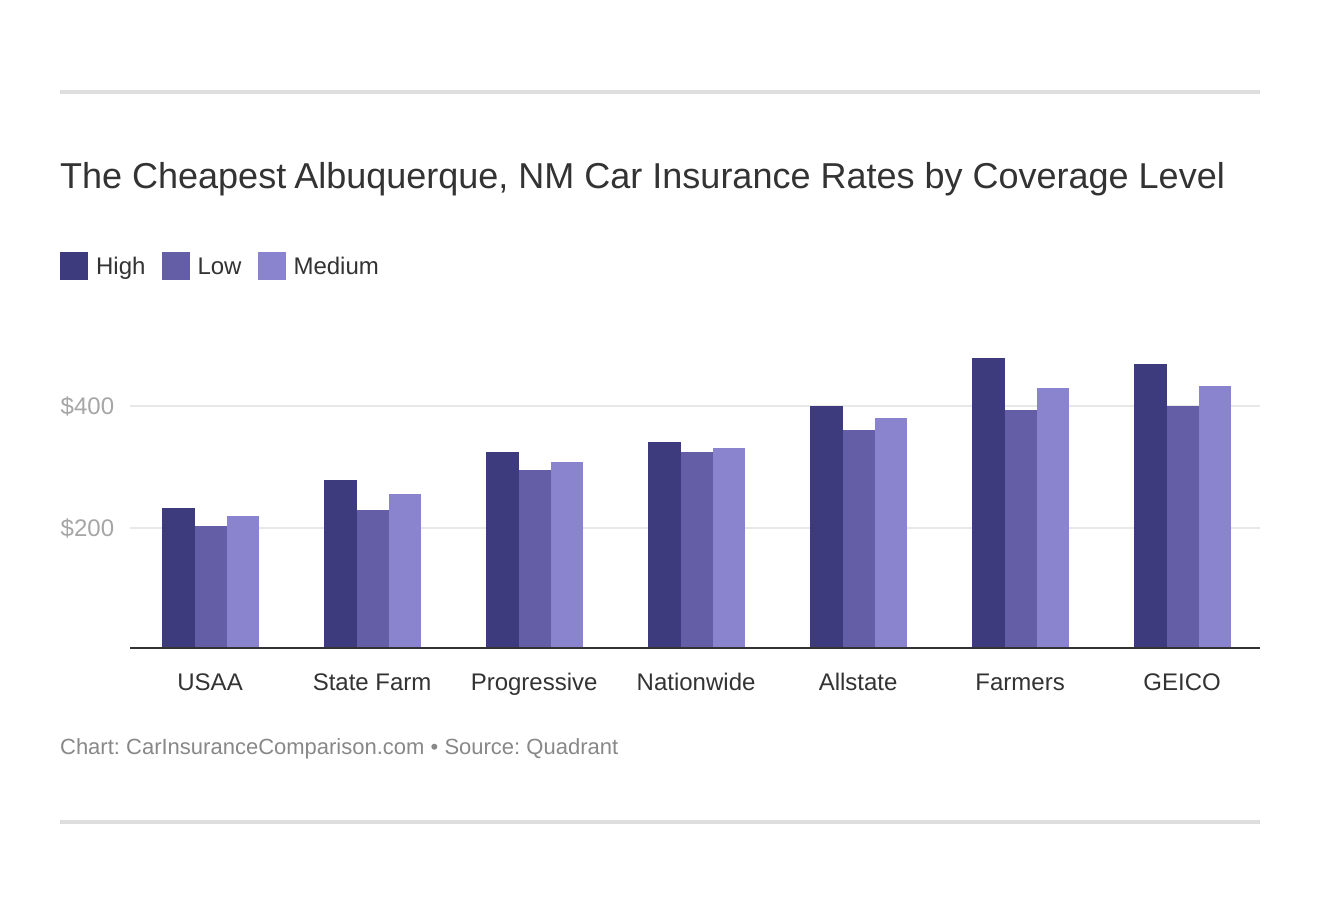 The Cheapest Albuquerque, NM Car Insurance Rates by Coverage Level